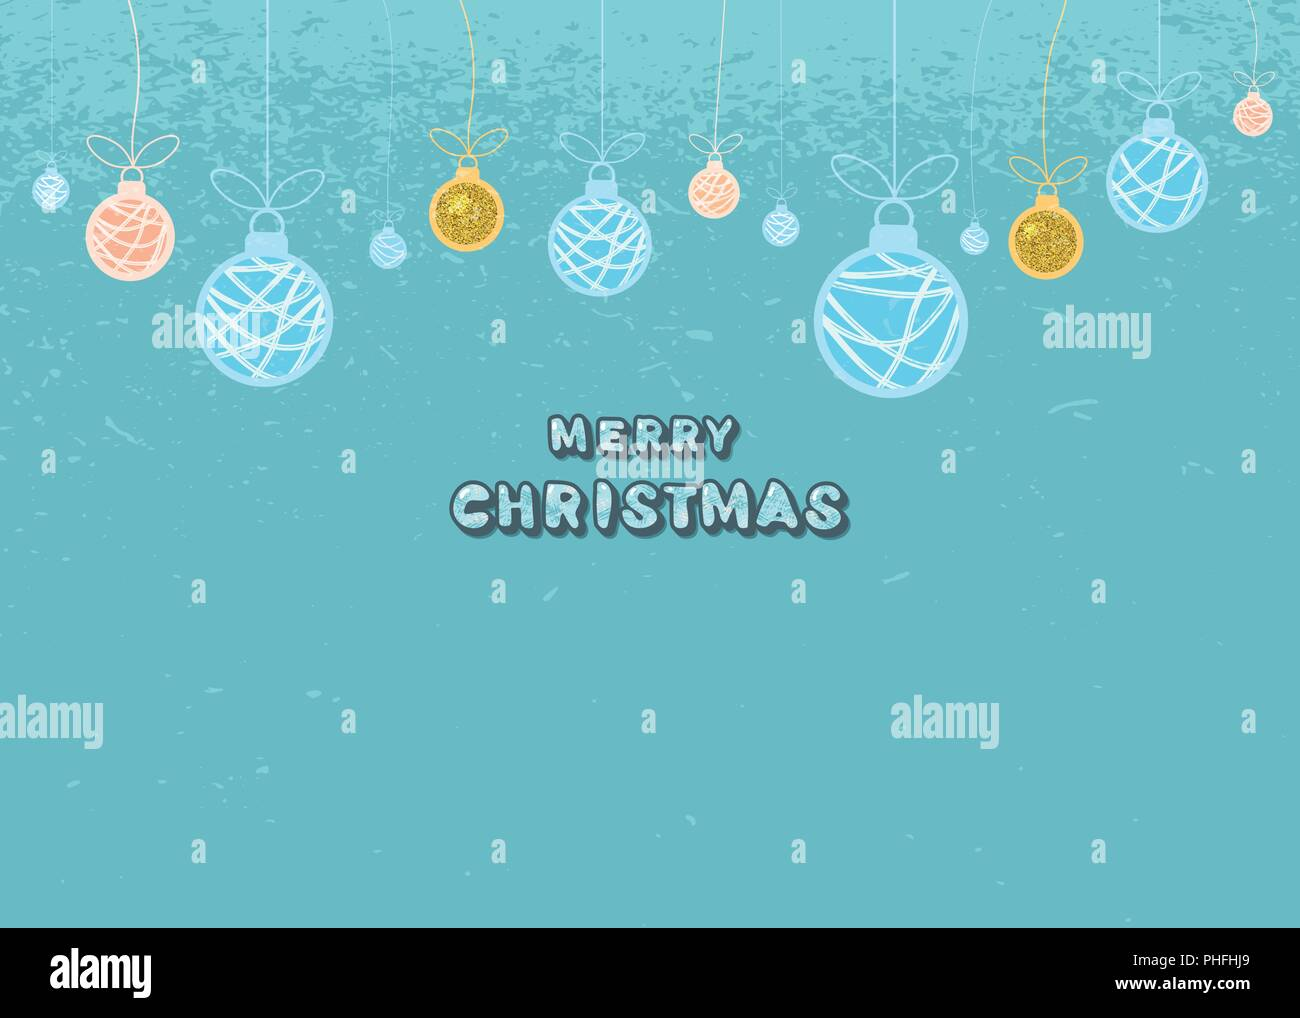 Merry Christmas Greeting Template Creative Lettering With Decotated